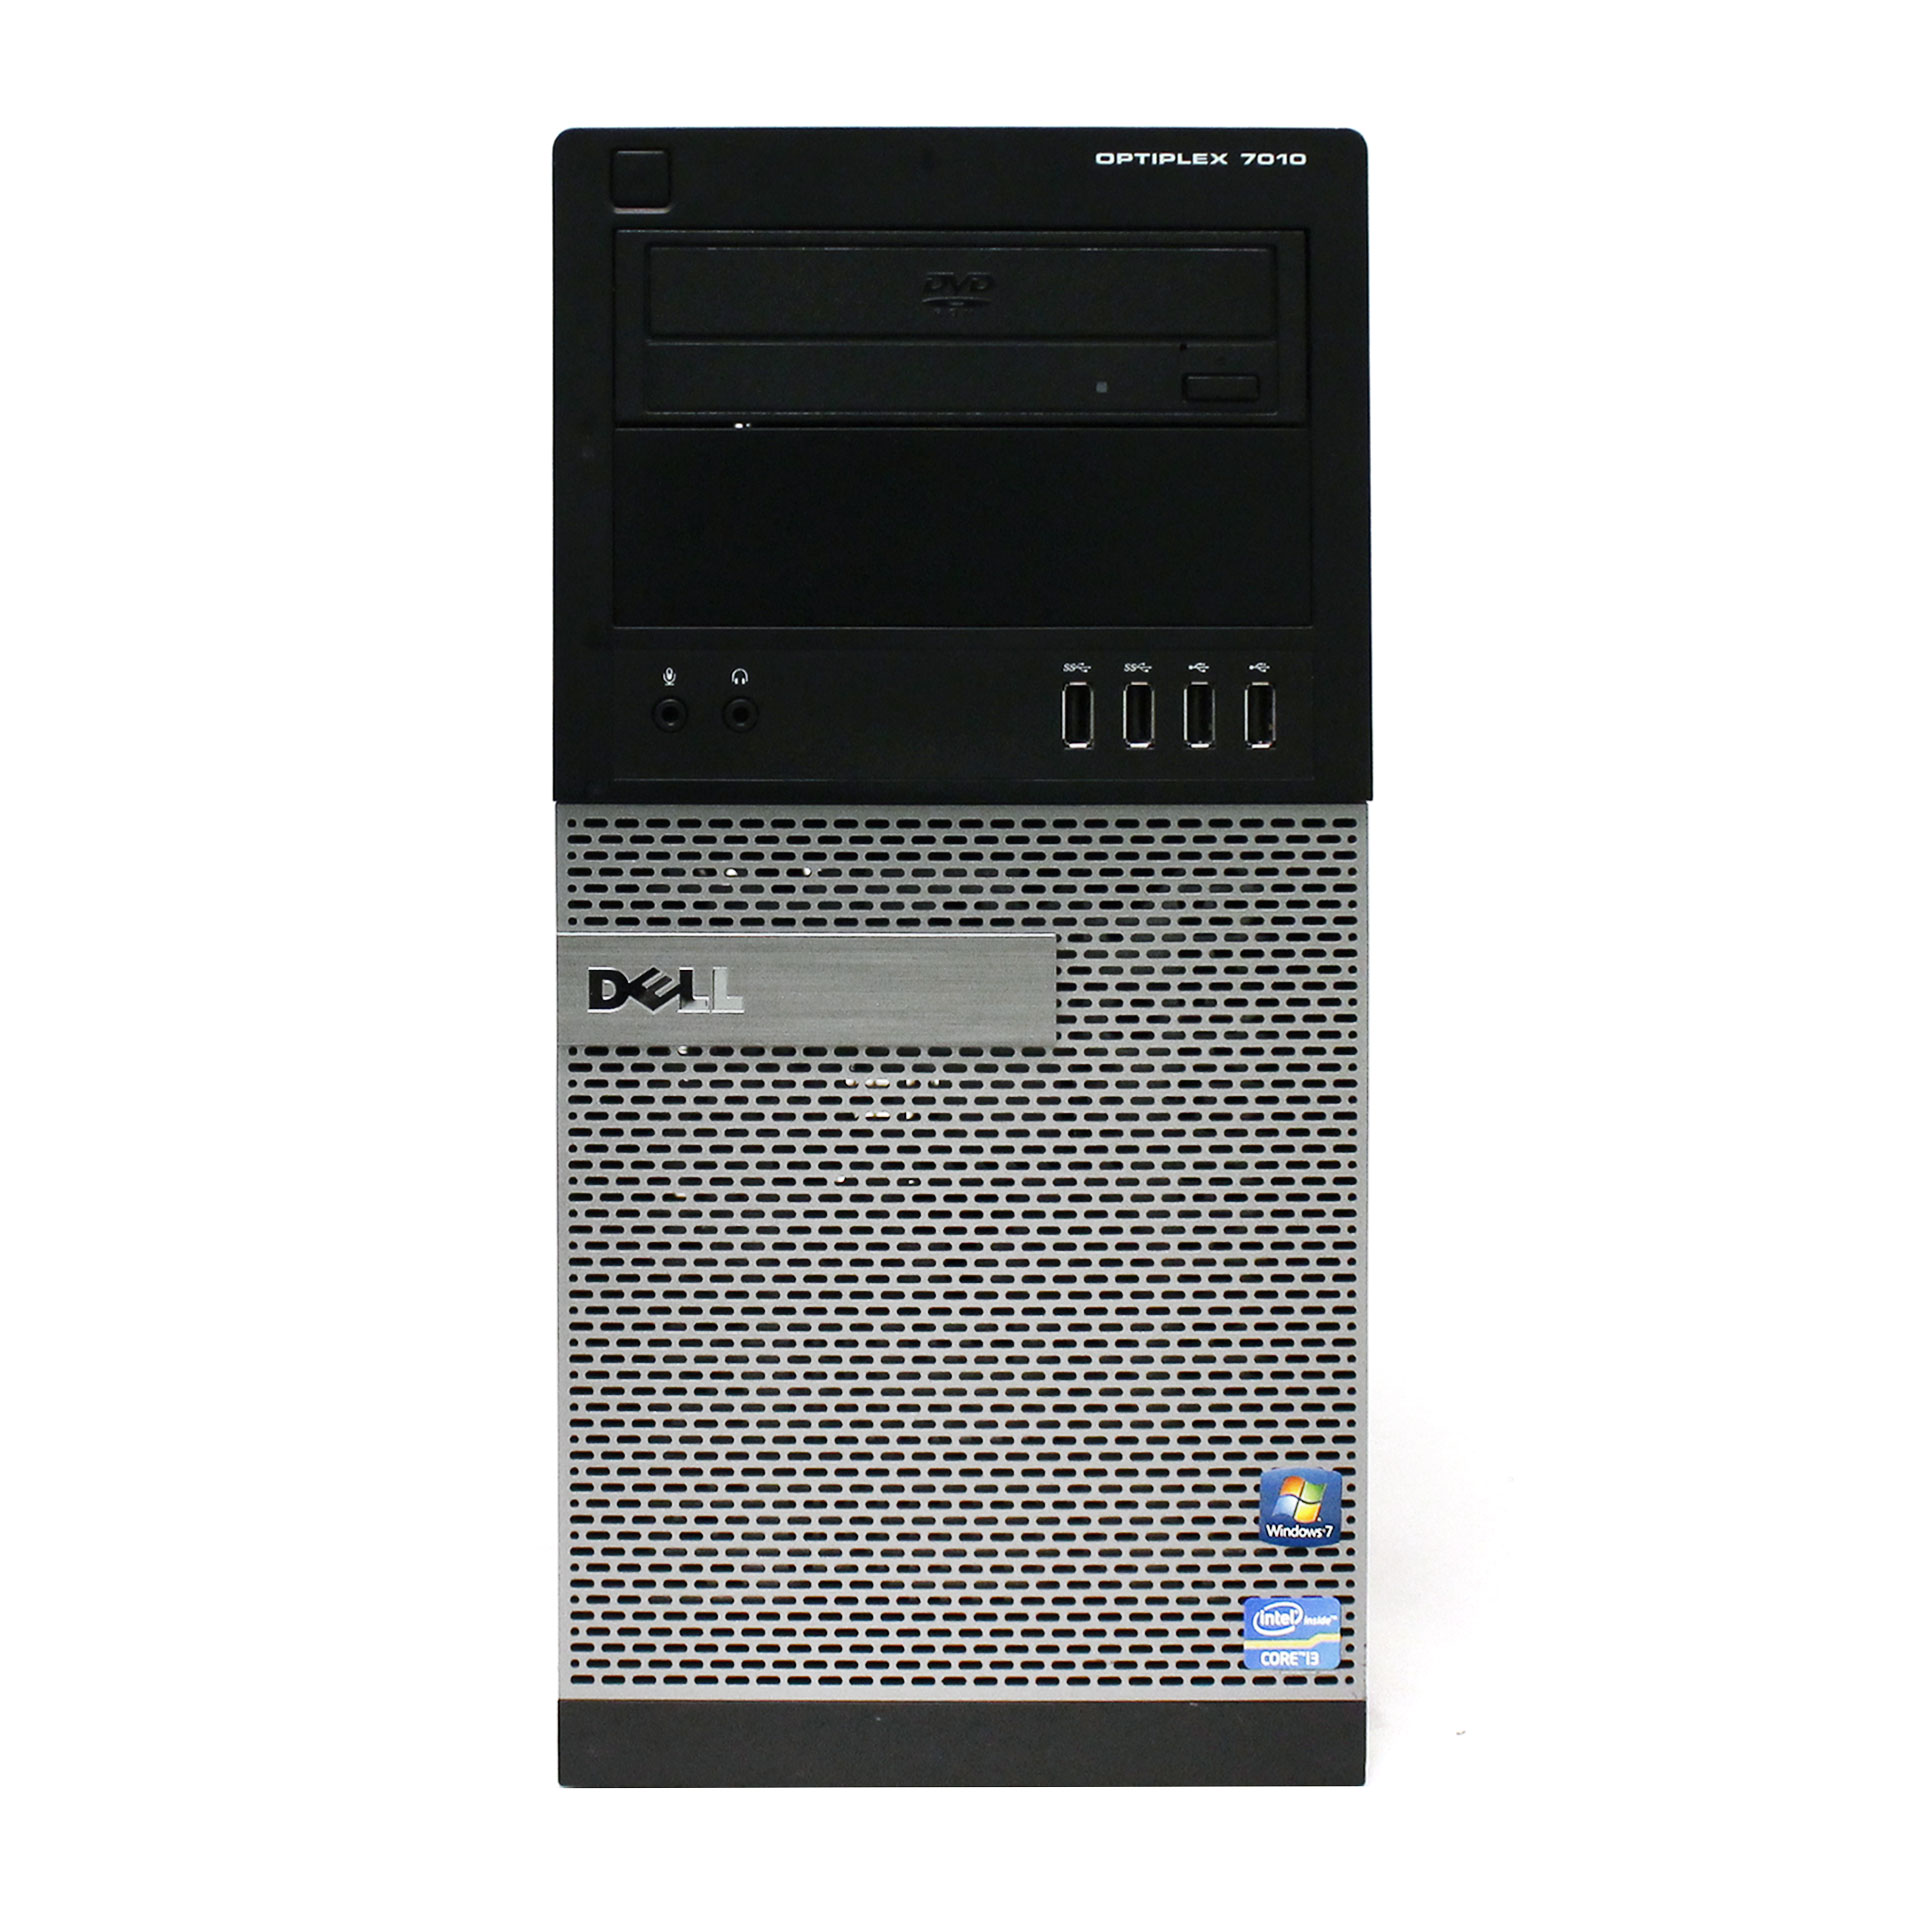 Dell OptiPlex 7010 SMT Intel 3.30GHz / 8GB/ 250GB / Win7 Desktop